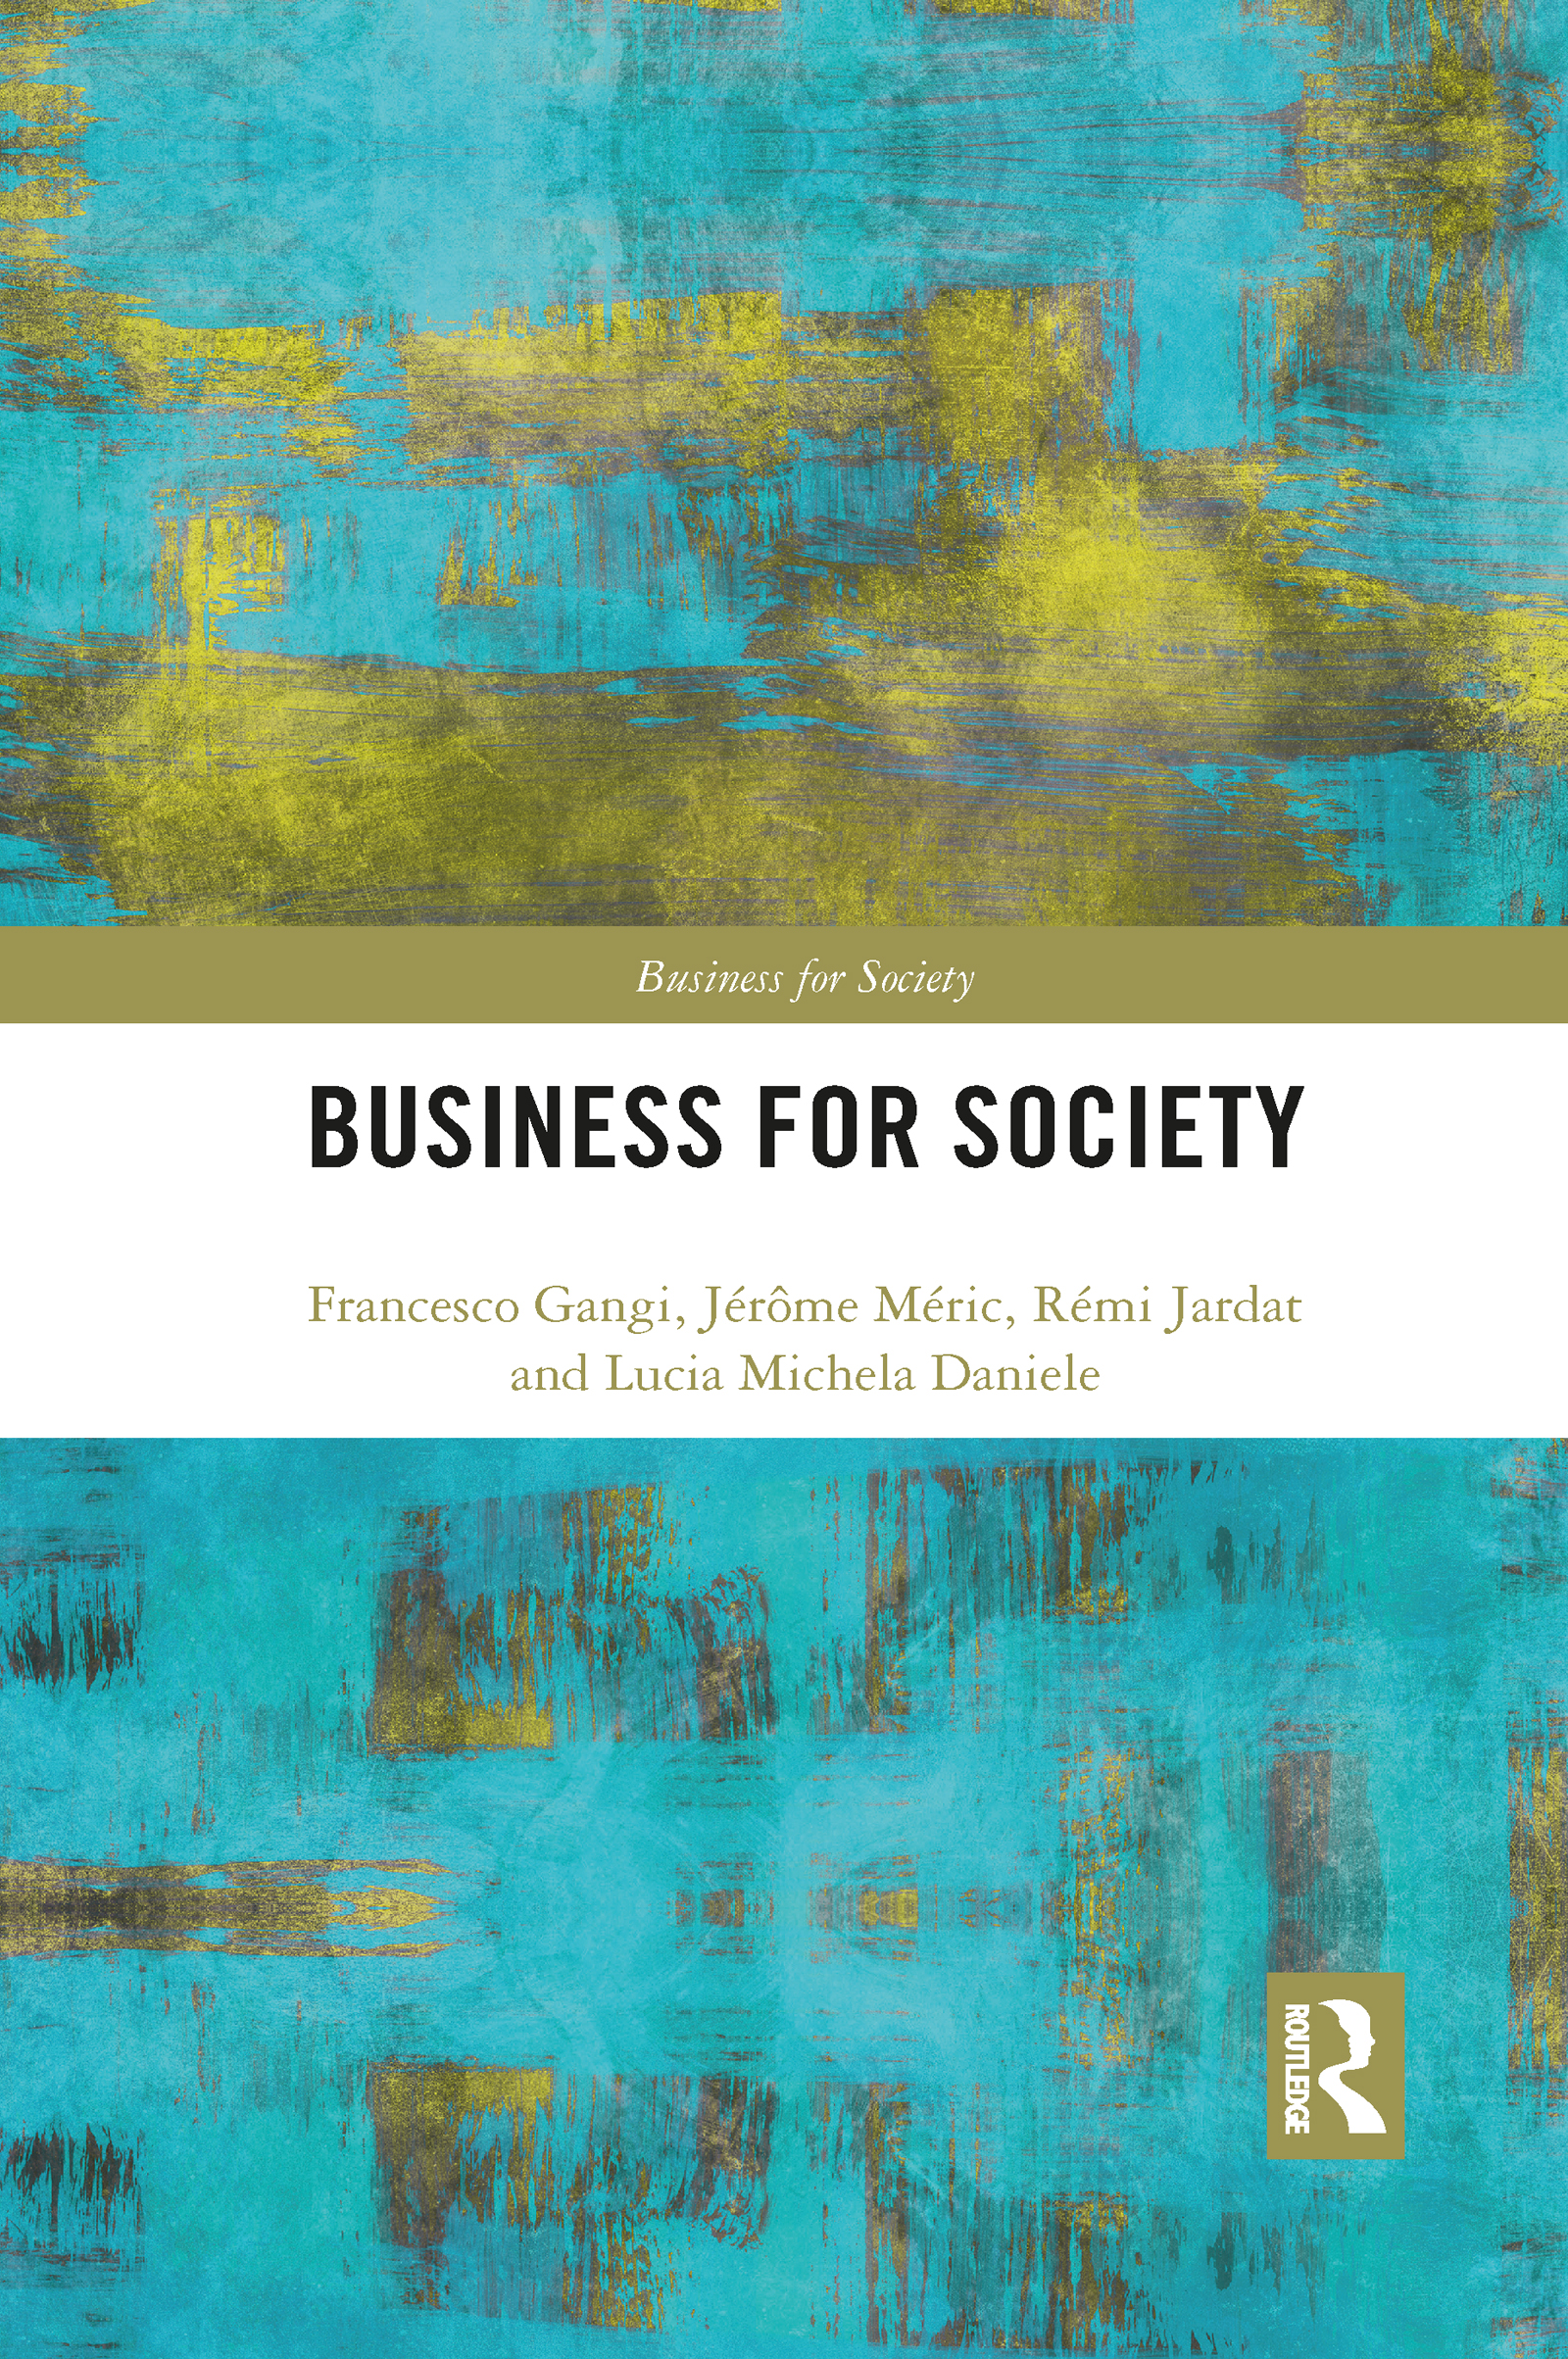 Business for Society